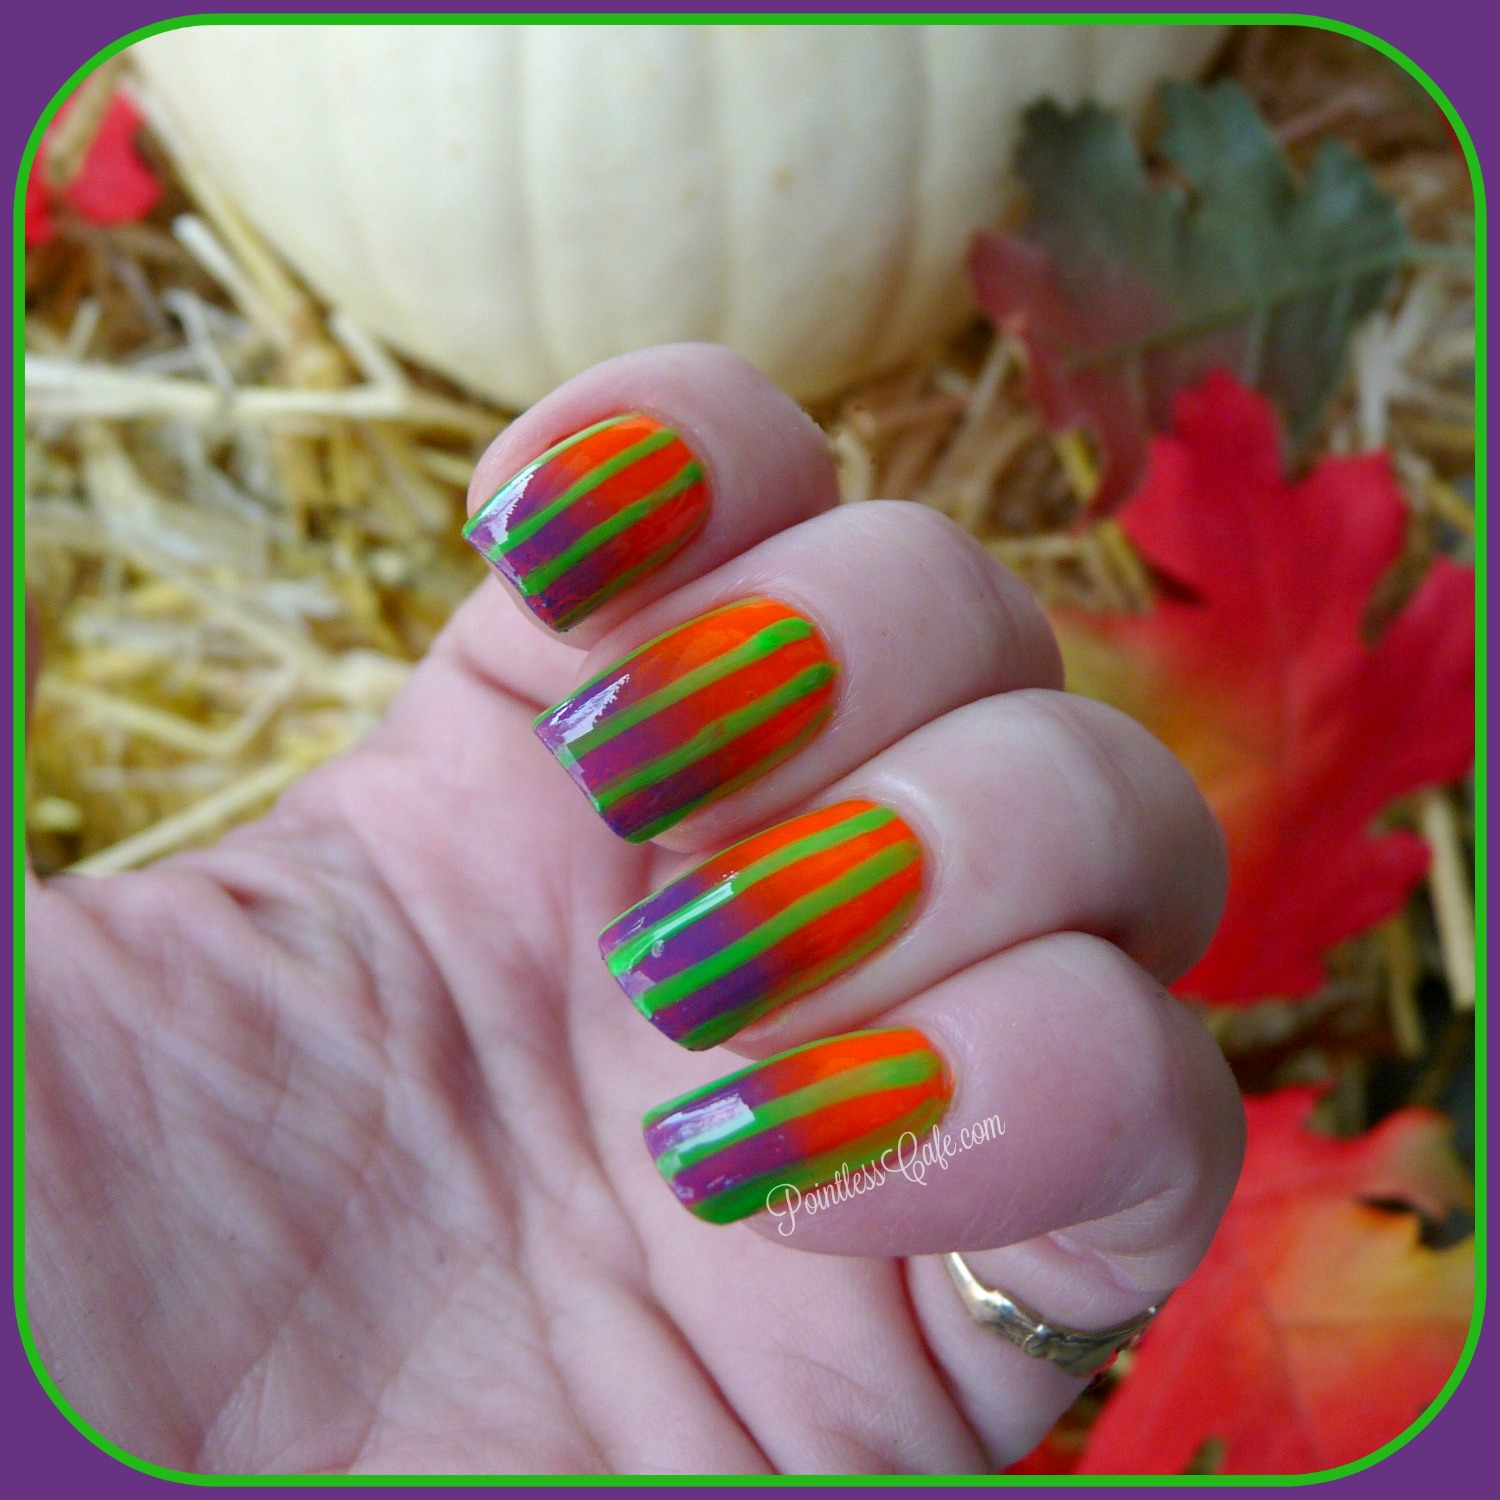 40 Great Nail Art Ideas: Halloween | Pointless Cafe